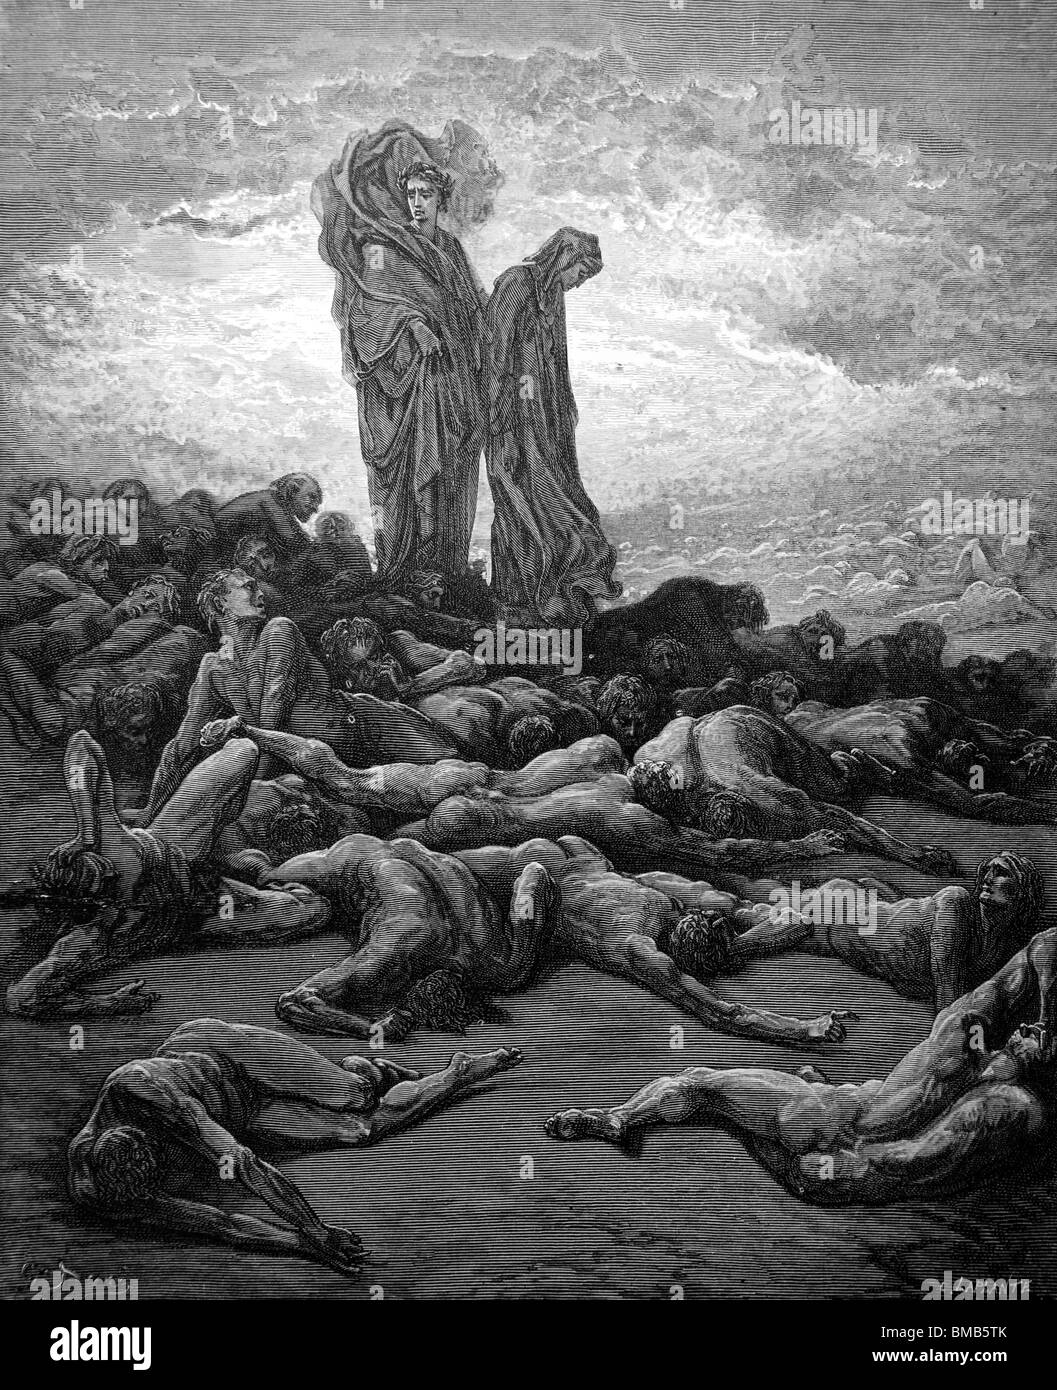 an analysis of dante alighieris the divine comedy purgatory The inferno is the first of three parts of dante's epic poem, the divine comedy,  which depicts an imaginary journey through hell, purgatory, and paradise dante .